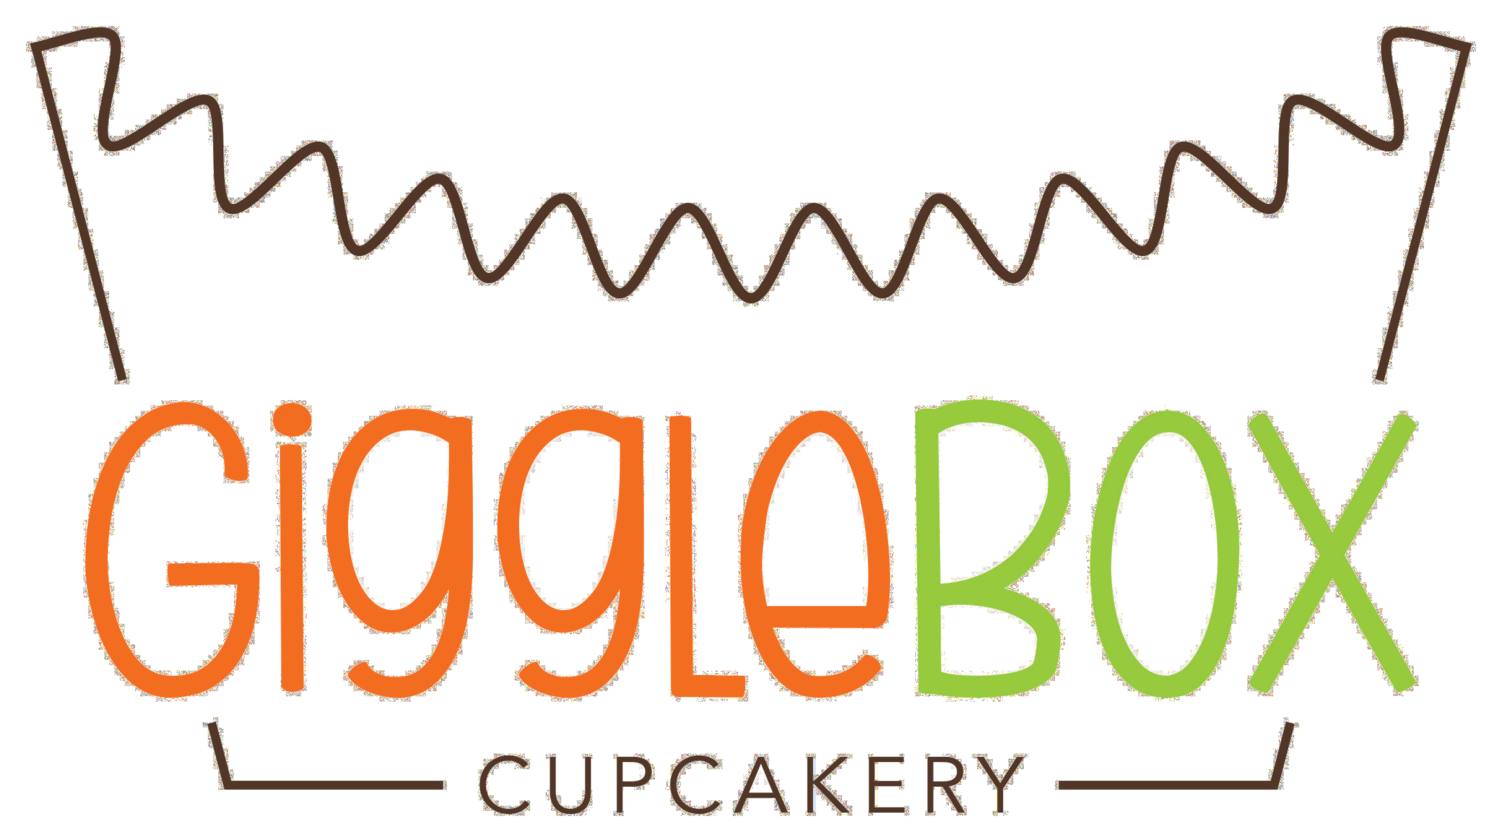 Gigglebox Cupcakery